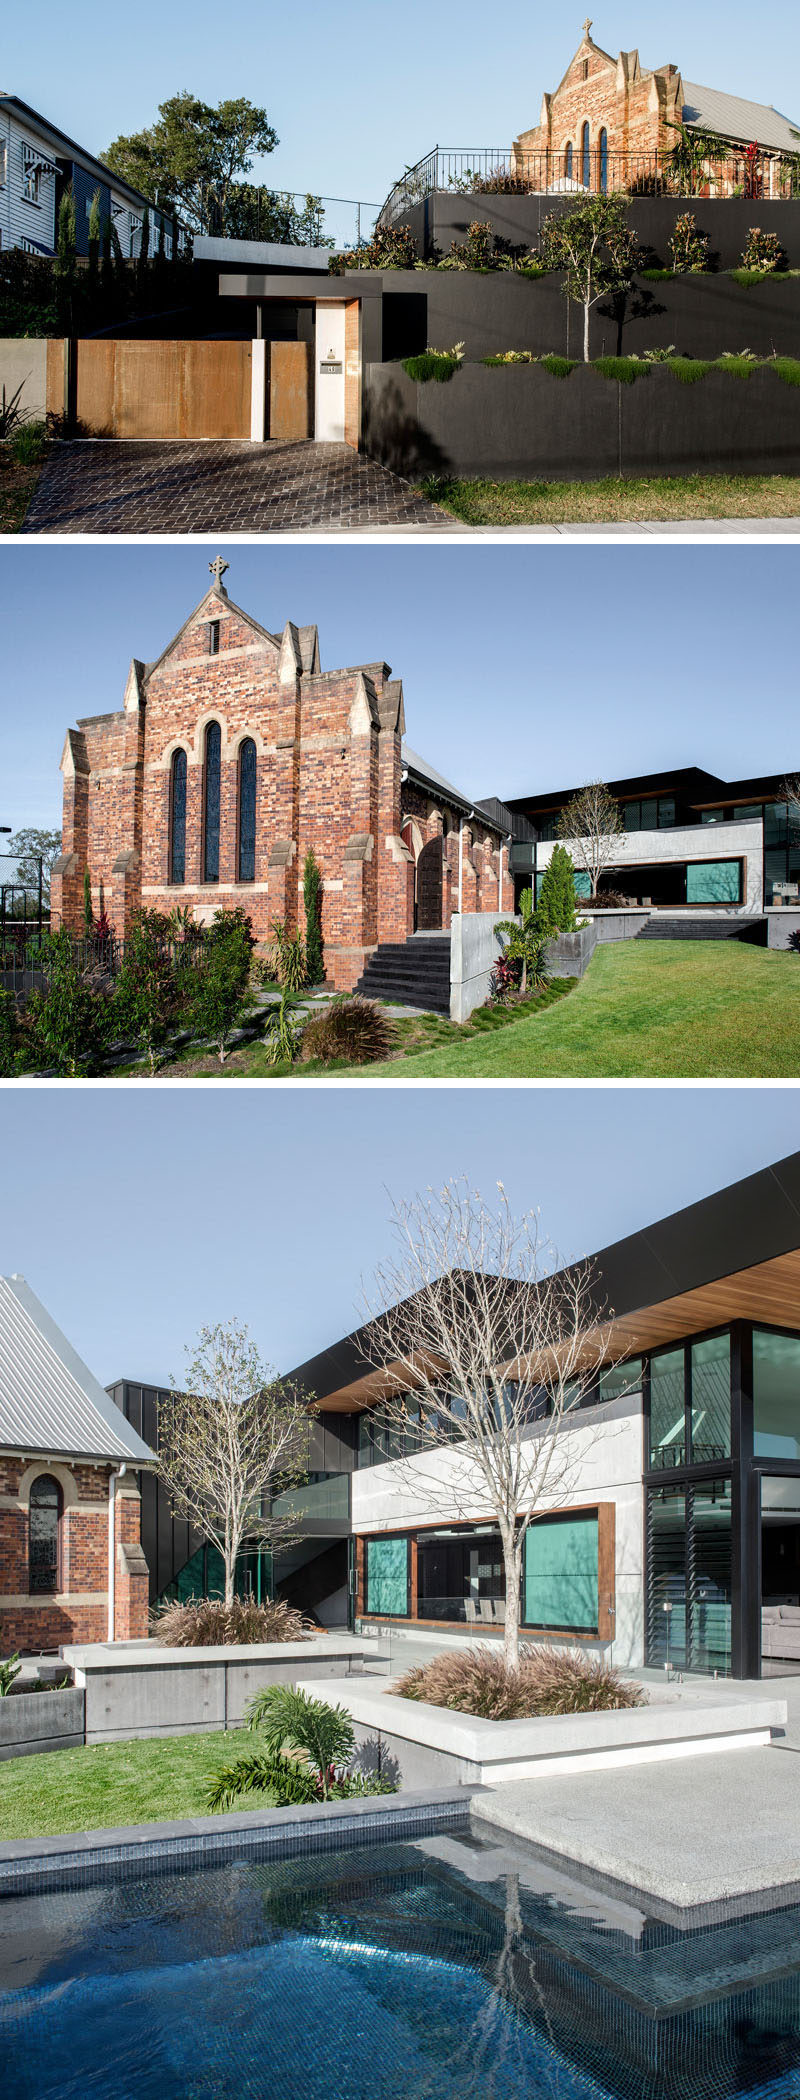 Architecture firm DAHA have completed the 'Church House', a 2 storey hillside residential extension and adaptation of the heritage listed 'Church of Transfiguration', that's located in Brisbane, Australia. #ChurchRenovation #Architecture #ModernHouse